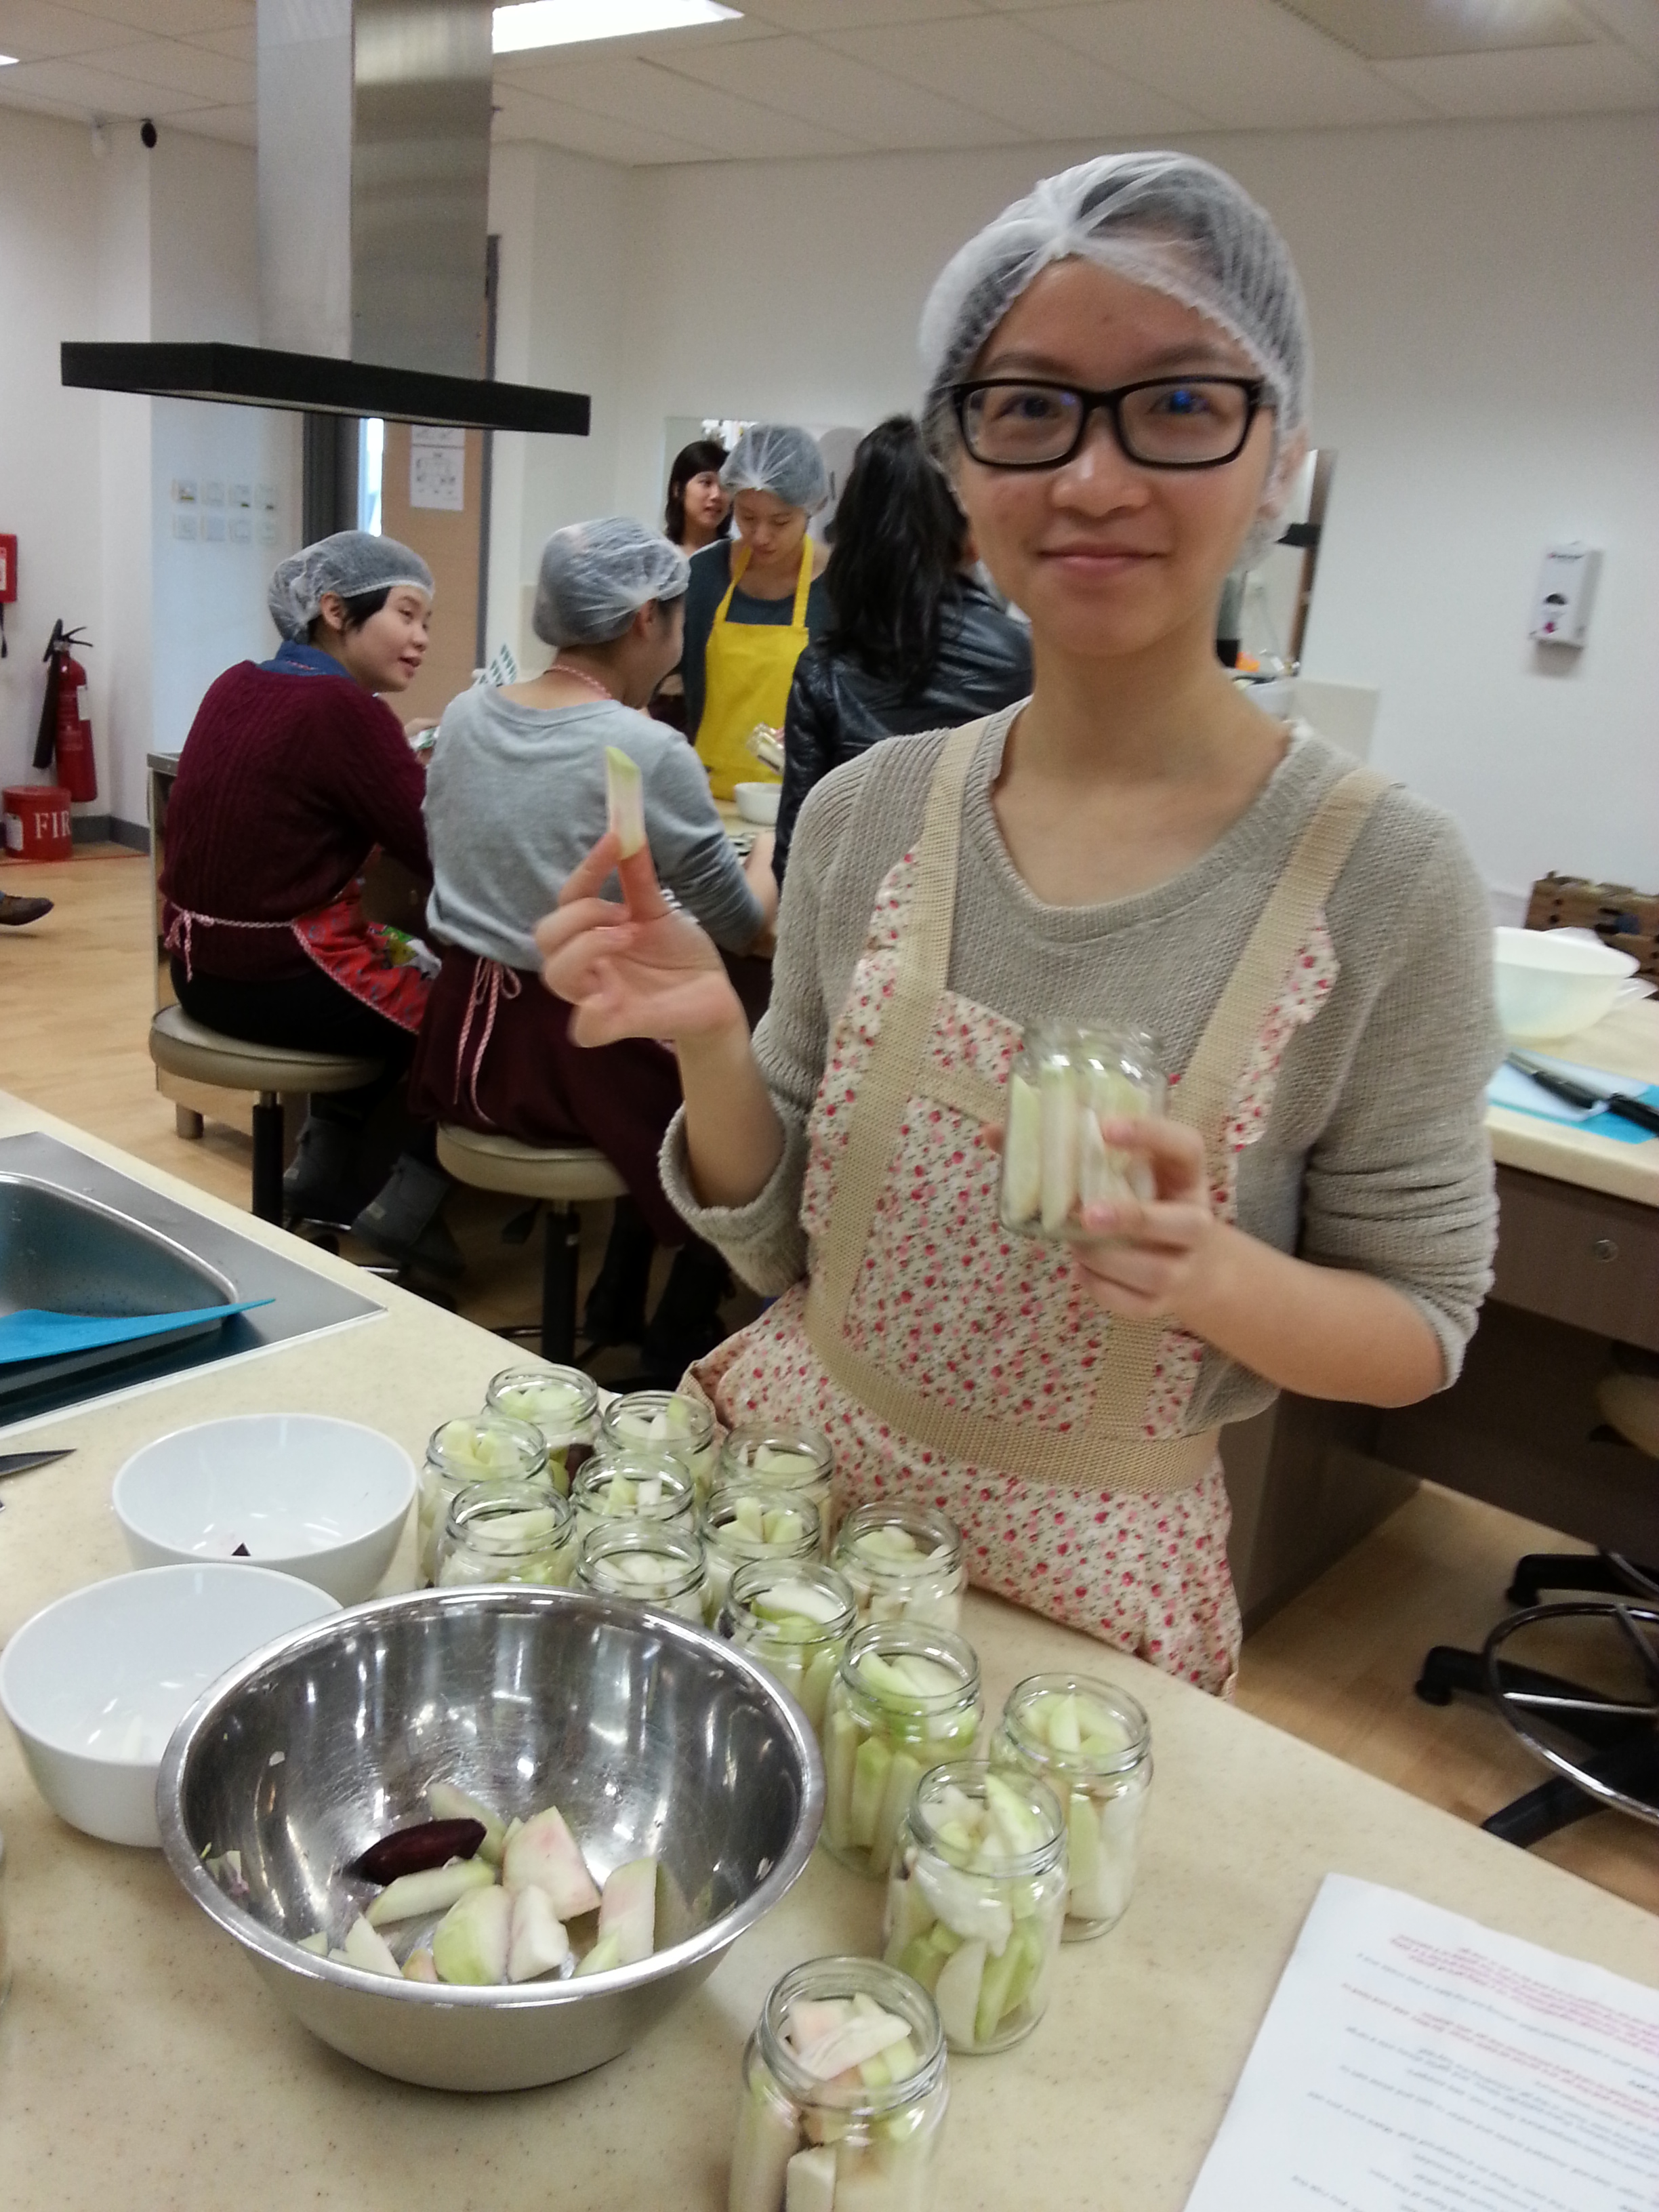 Feeding Hong Kong - Make Festive Treats for the Needy - Photo - 11